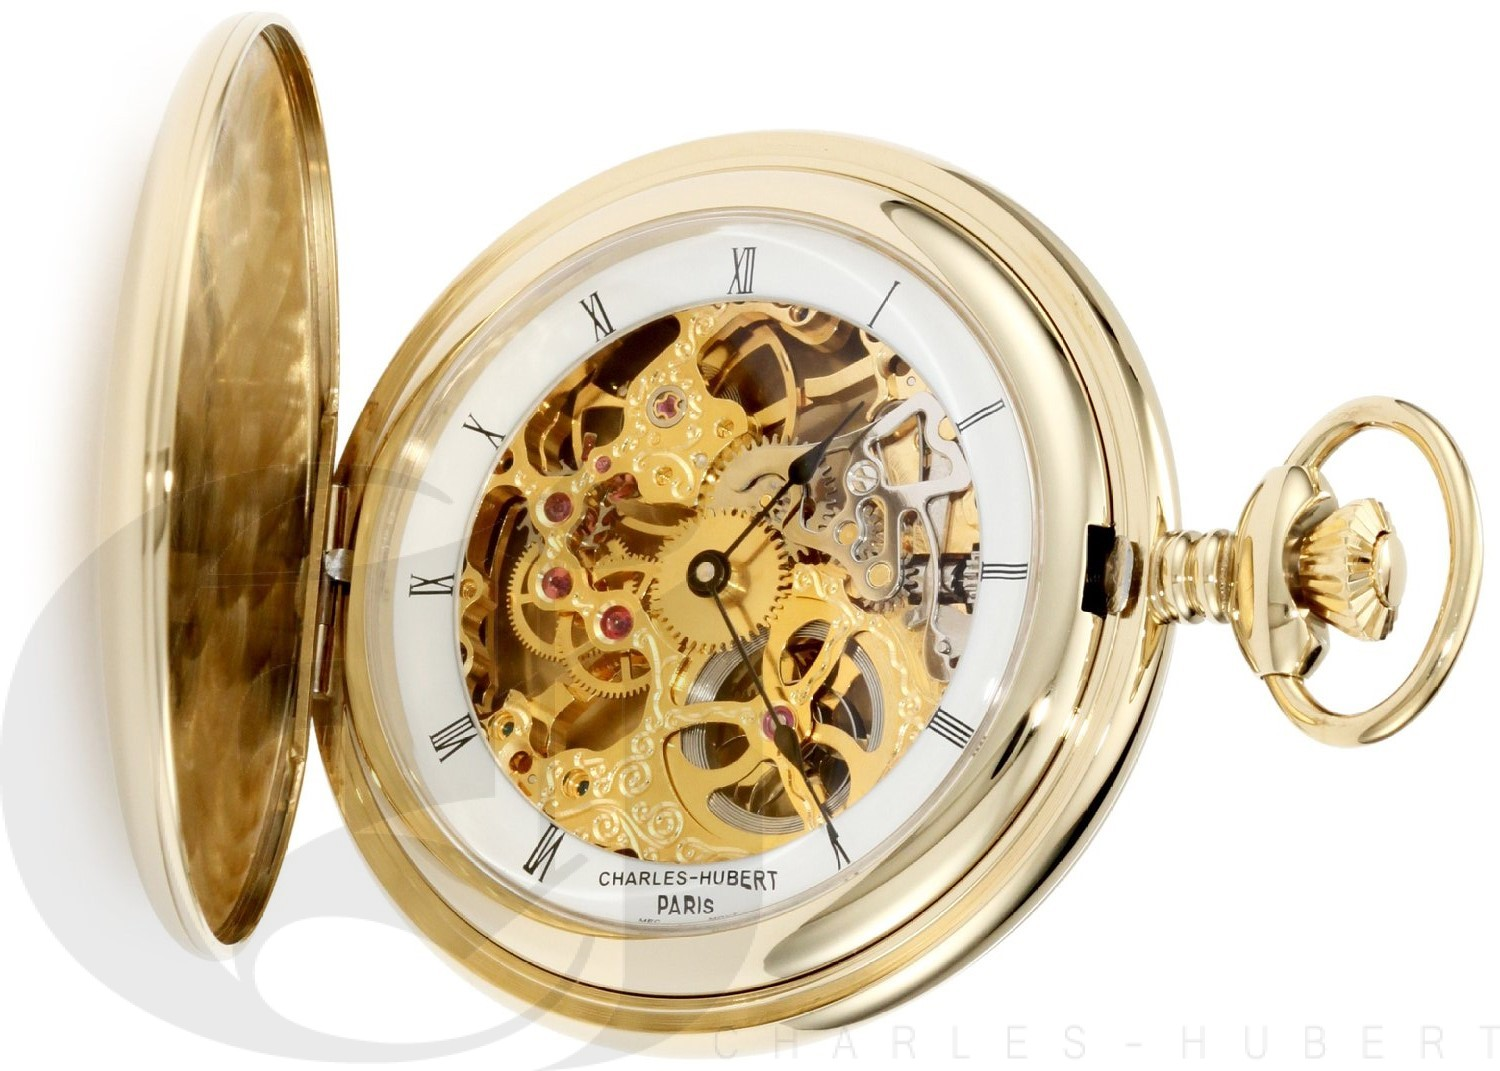 Charles-Hubert Paris Gold-Plated Stainless Steel Polished Finish Hunter Case Mechanical Pocket Watch